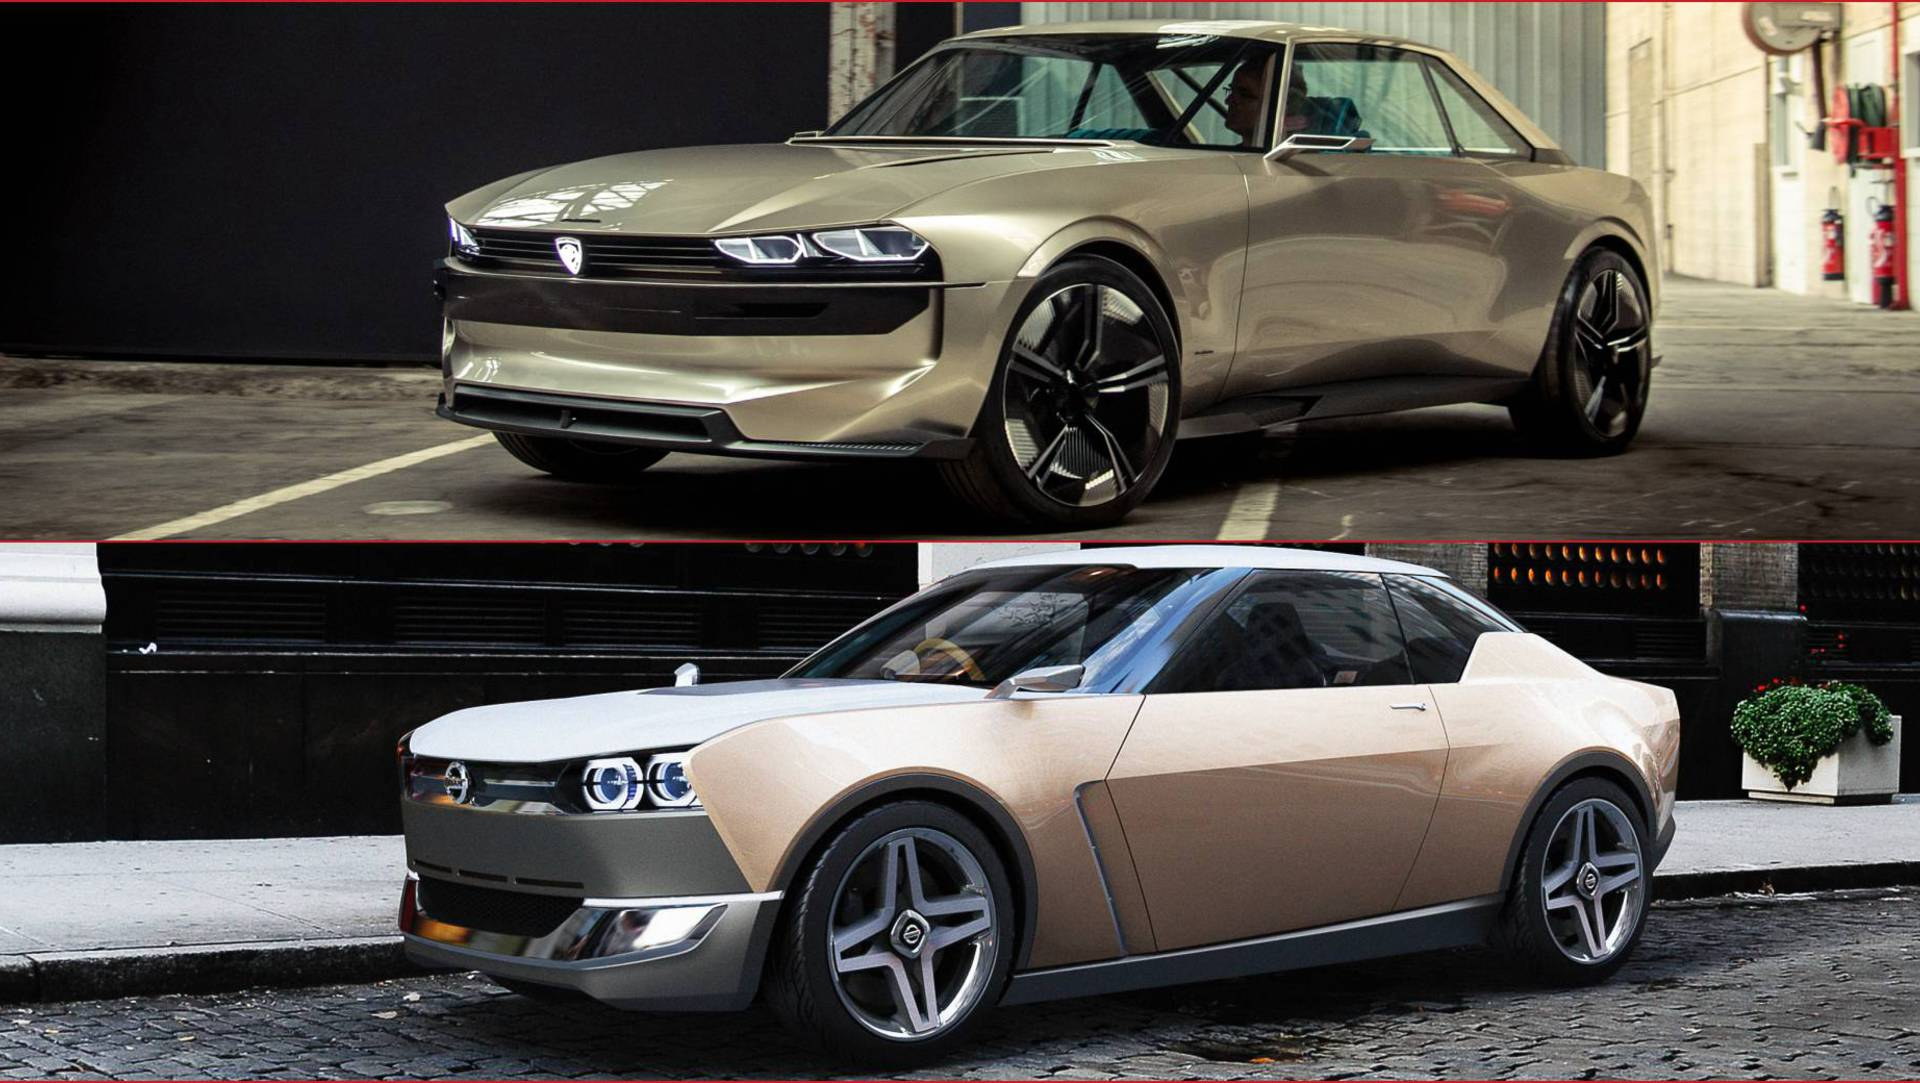 Peugeot E Legend And Nissan Idx Freeflow Do They Really Look So